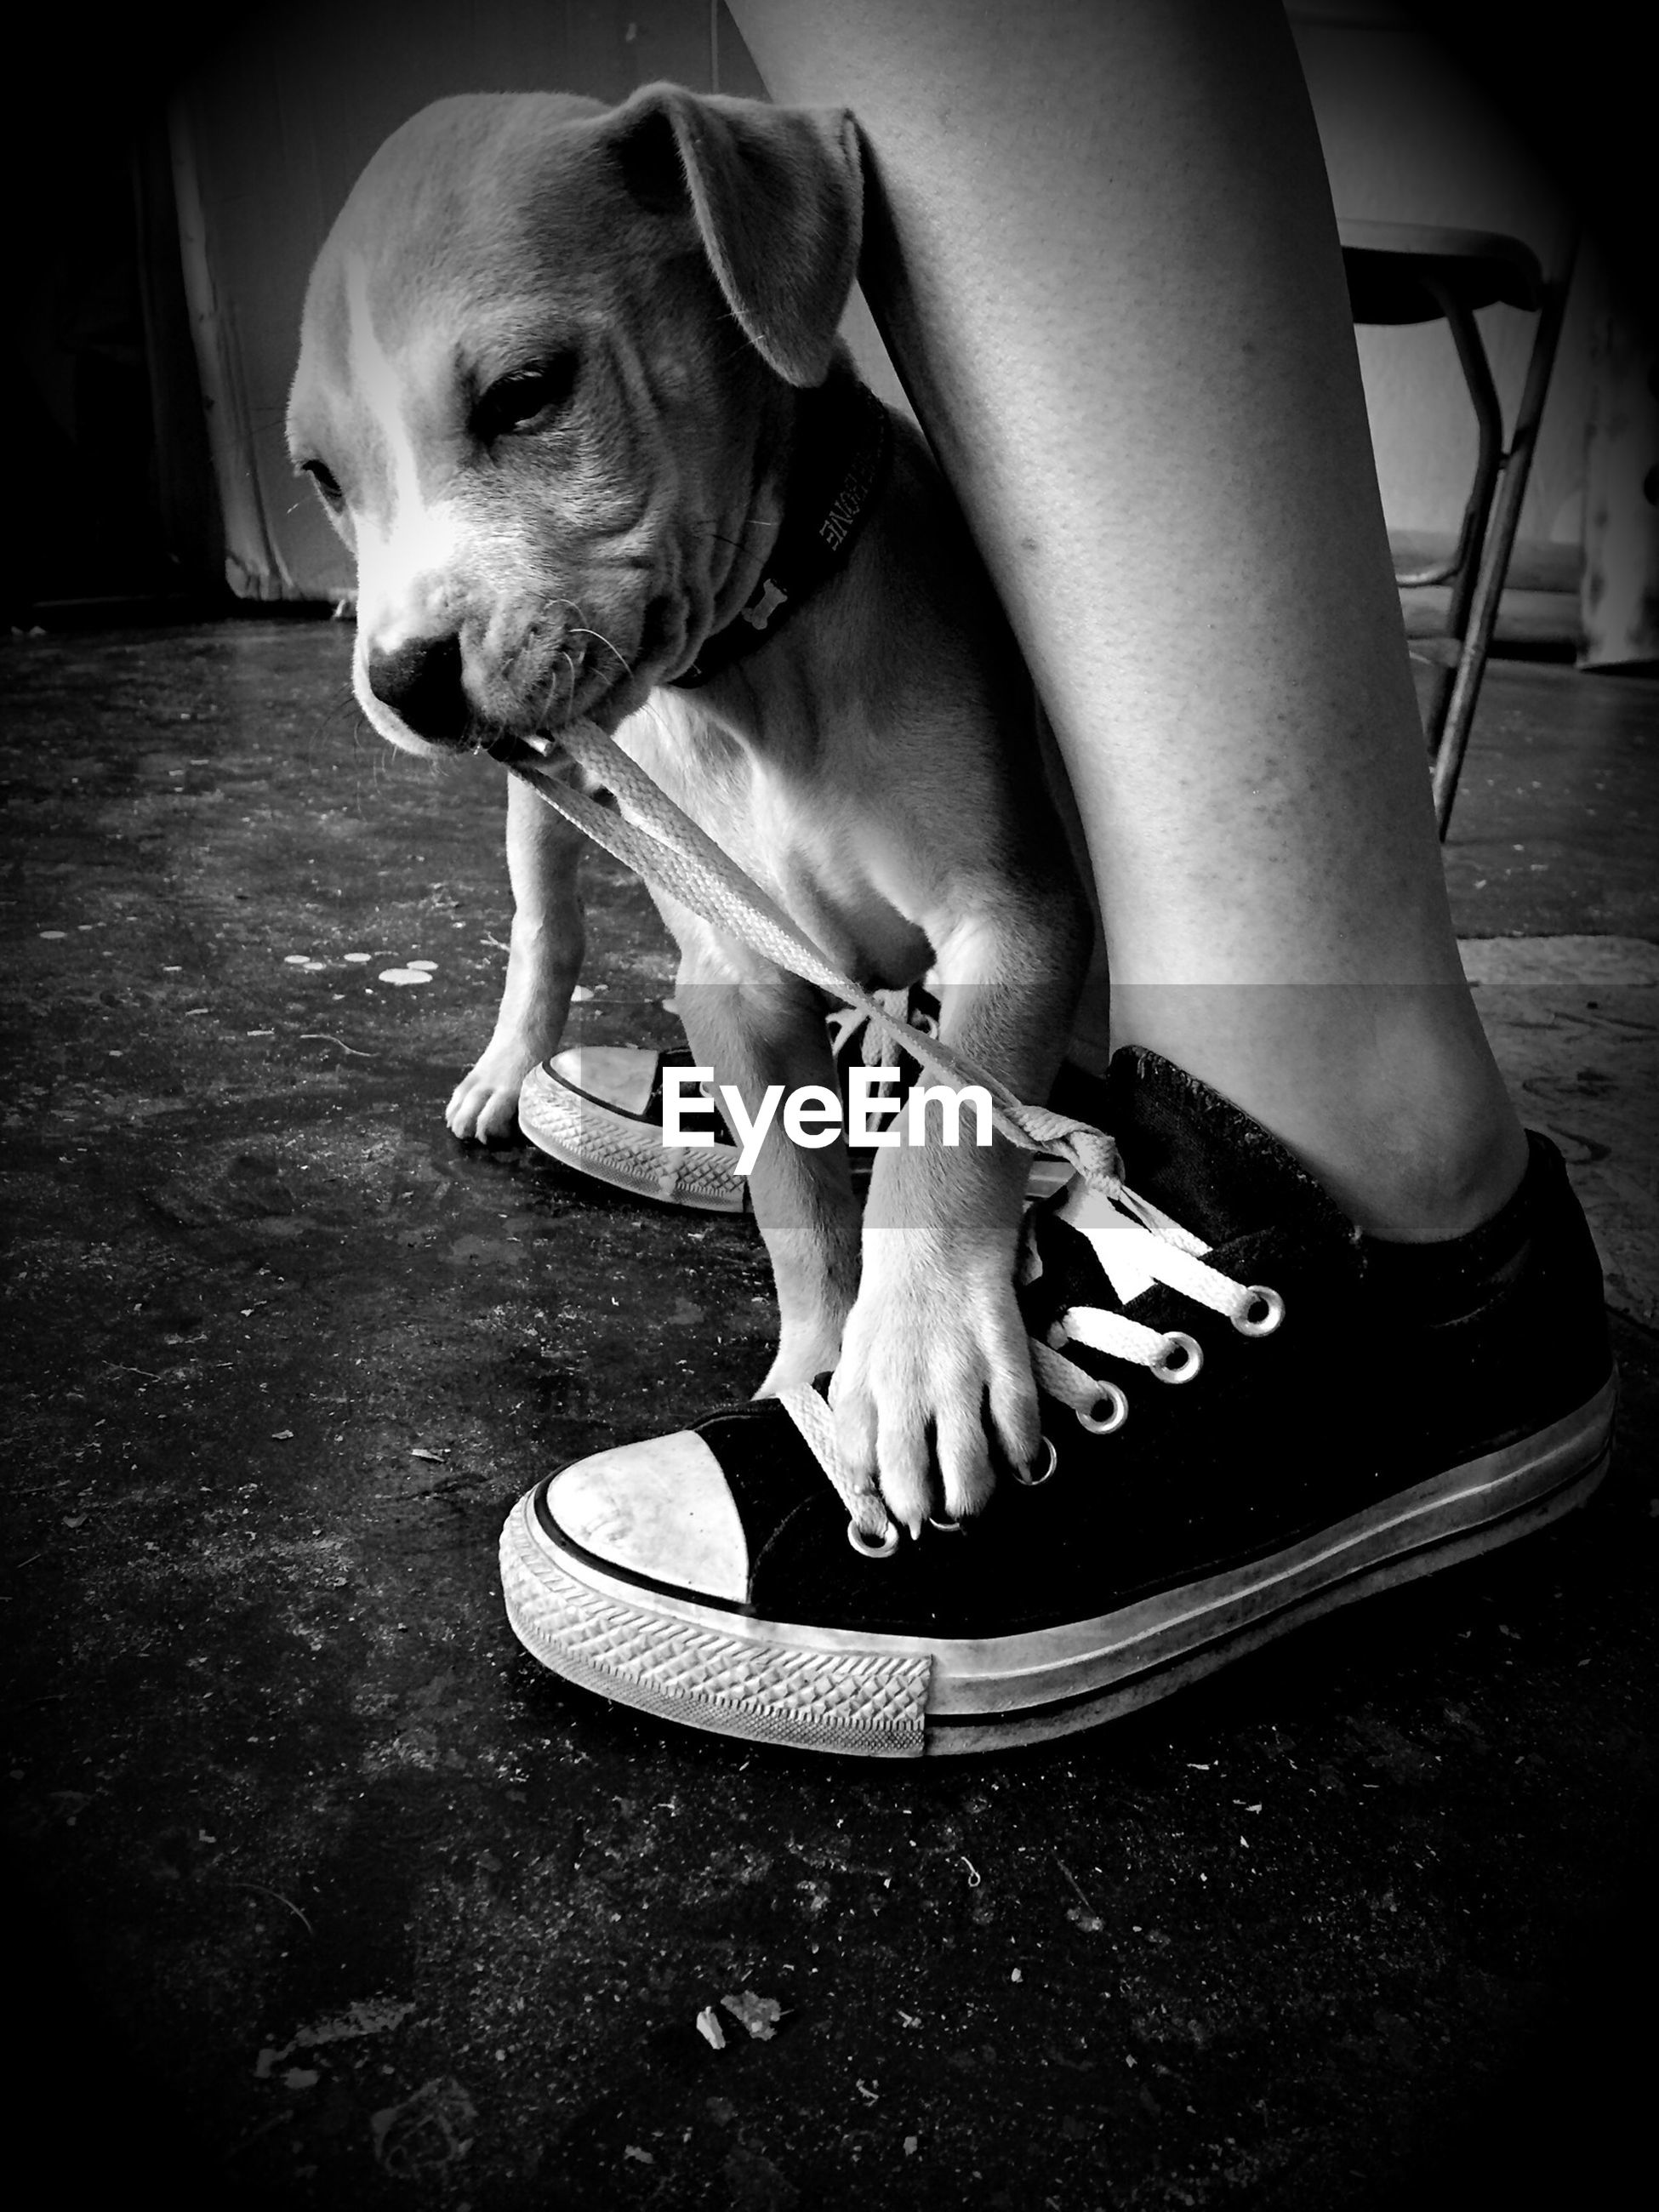 Close-up of puppy biting shoelace of person